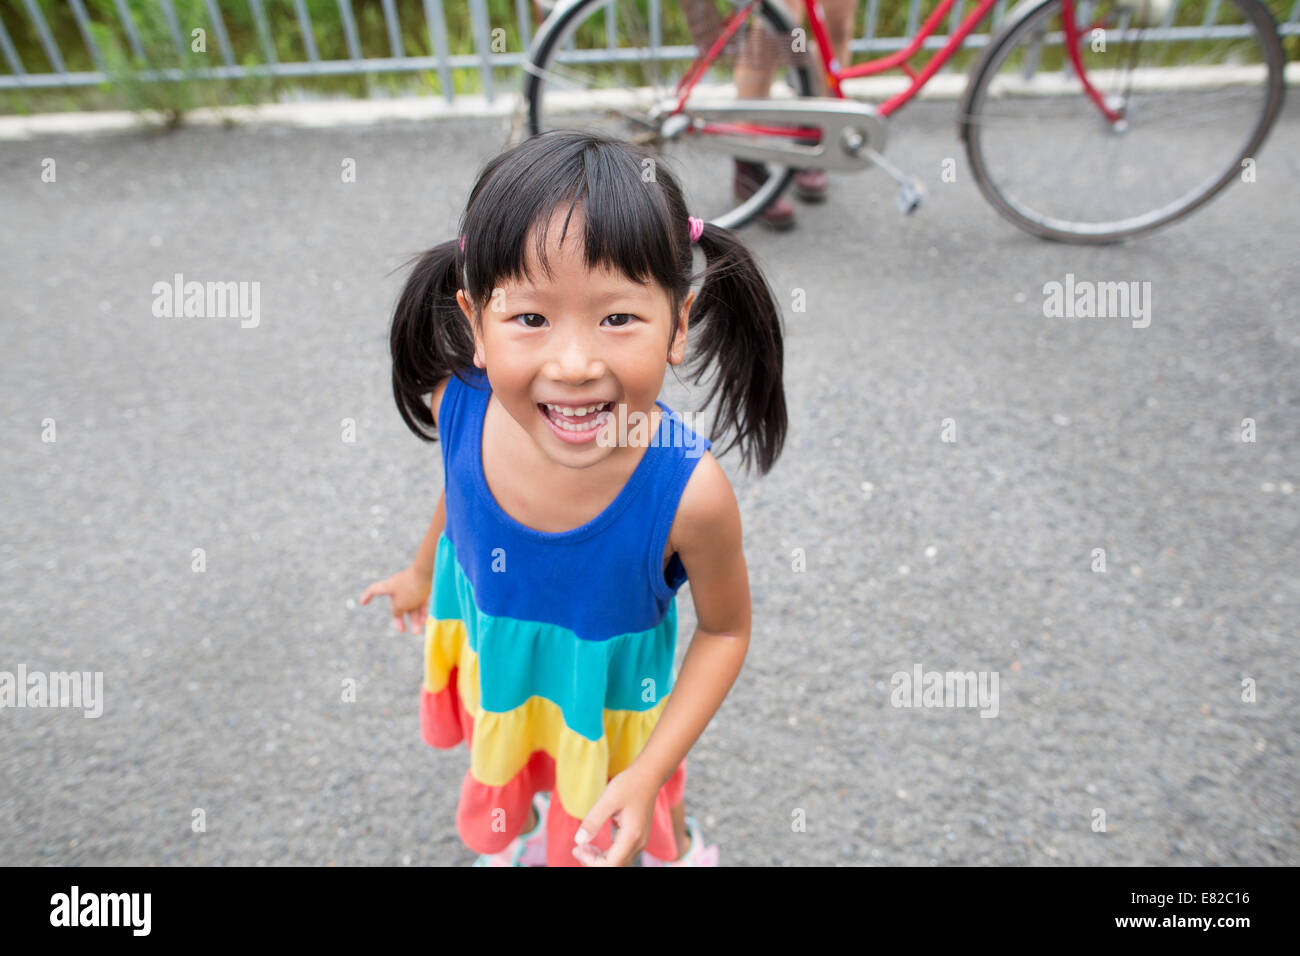 A young girl with pigtails smiling at the camera. Stock Photo